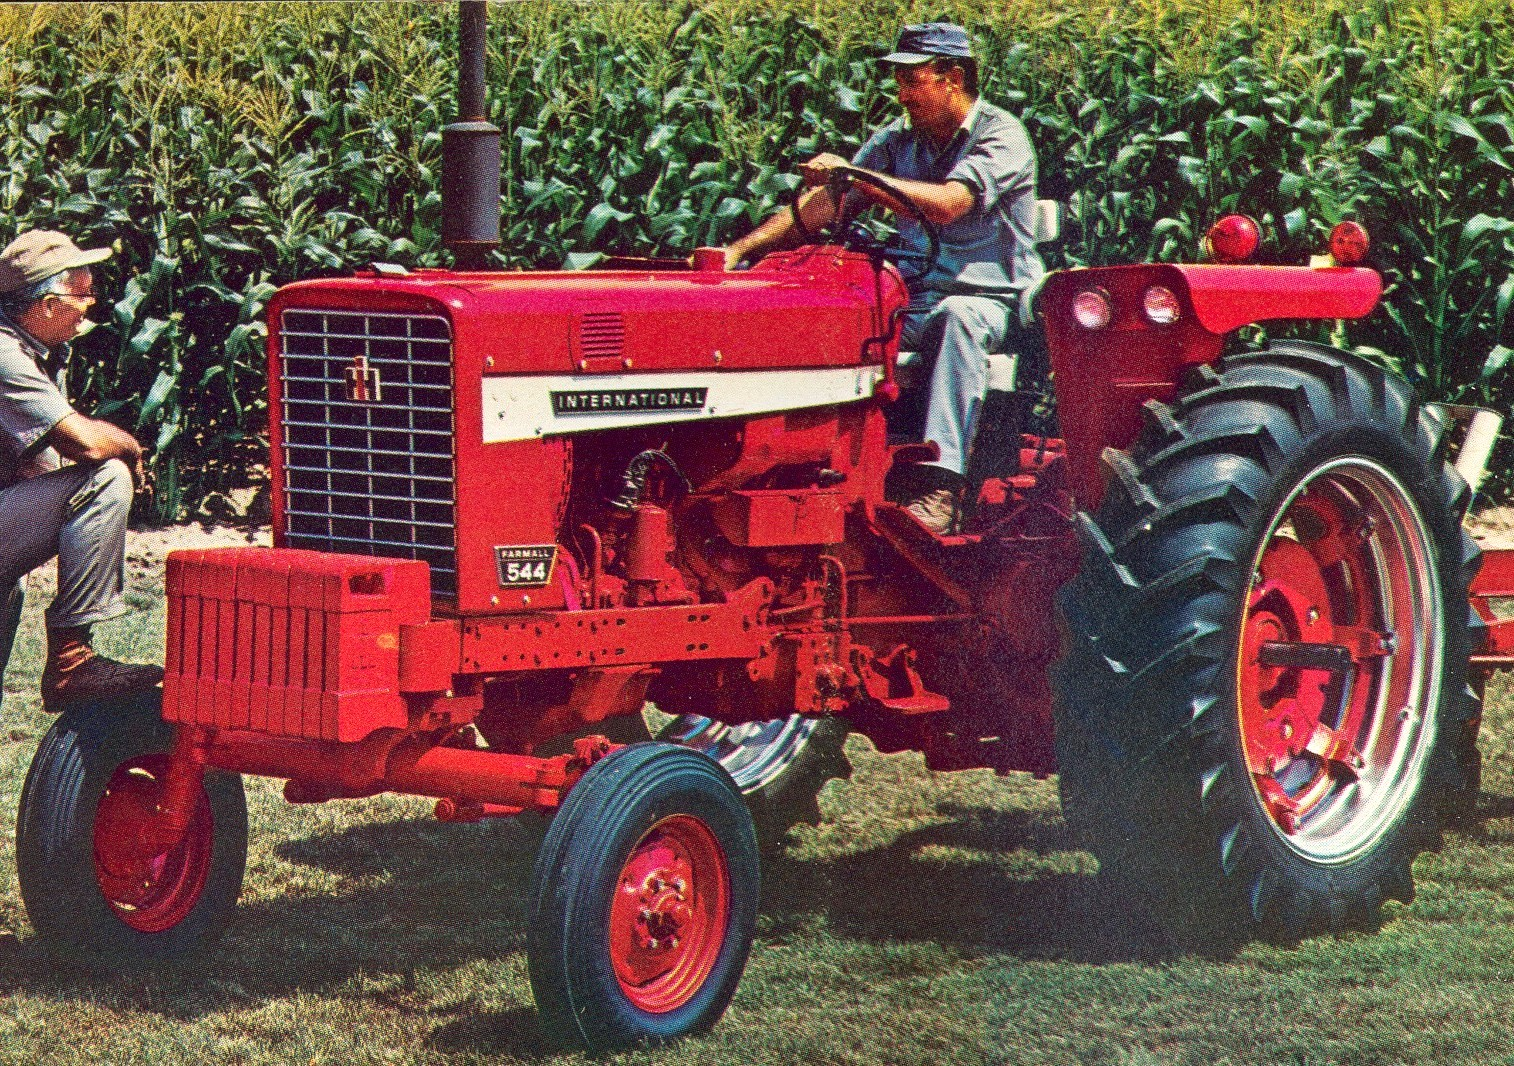 Wiring Diagram For Farmall 656 H Schematic Model Exelent International Tractor Image Generator Enchanting